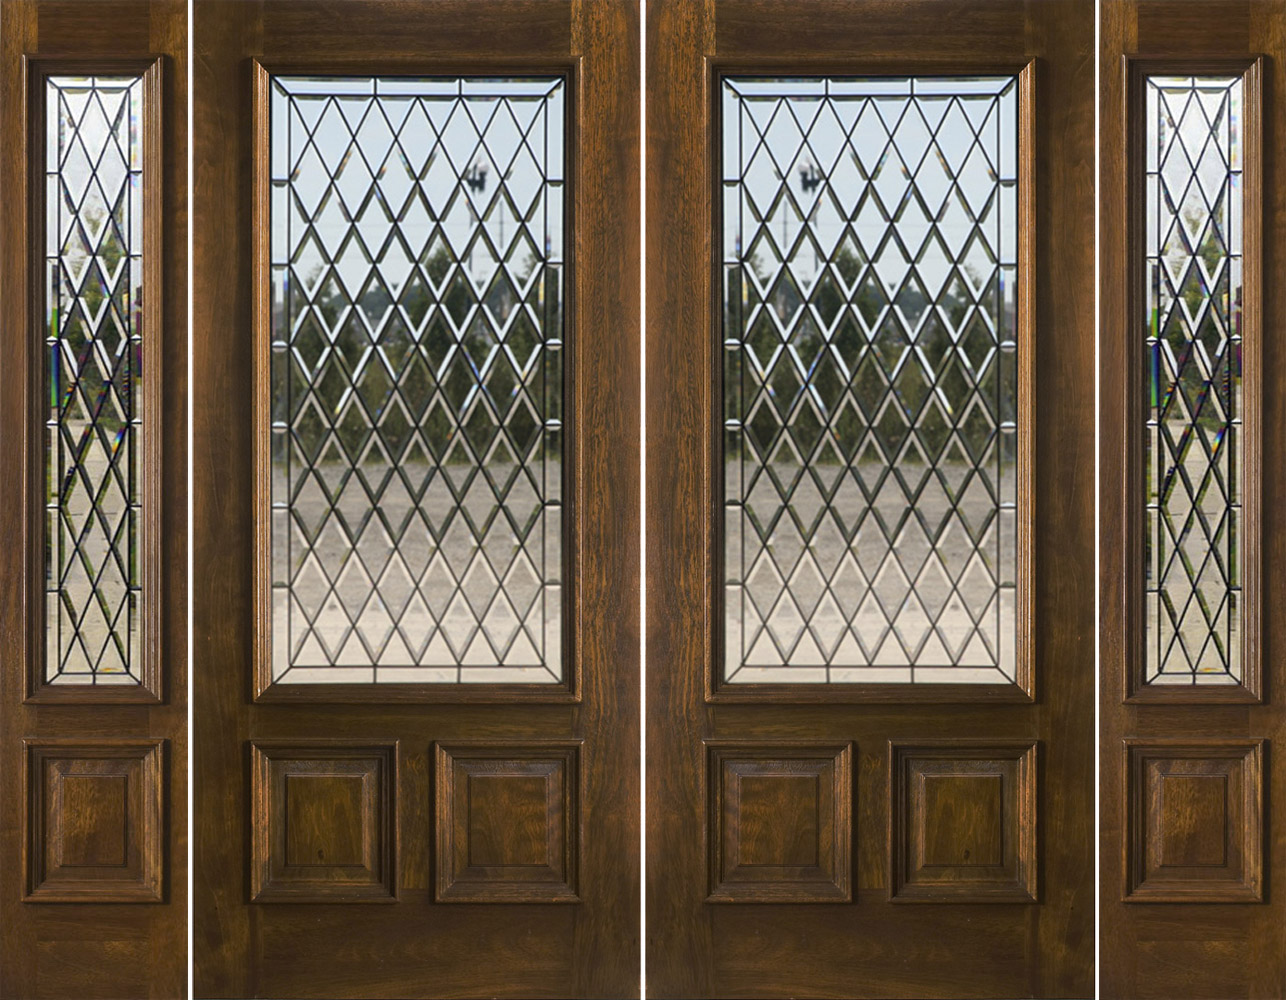 1000 #63462A Exterior Double Doors With Sidelights Solid Mahogany Doors wallpaper Glass Entry Doors With Sidelights 42951286